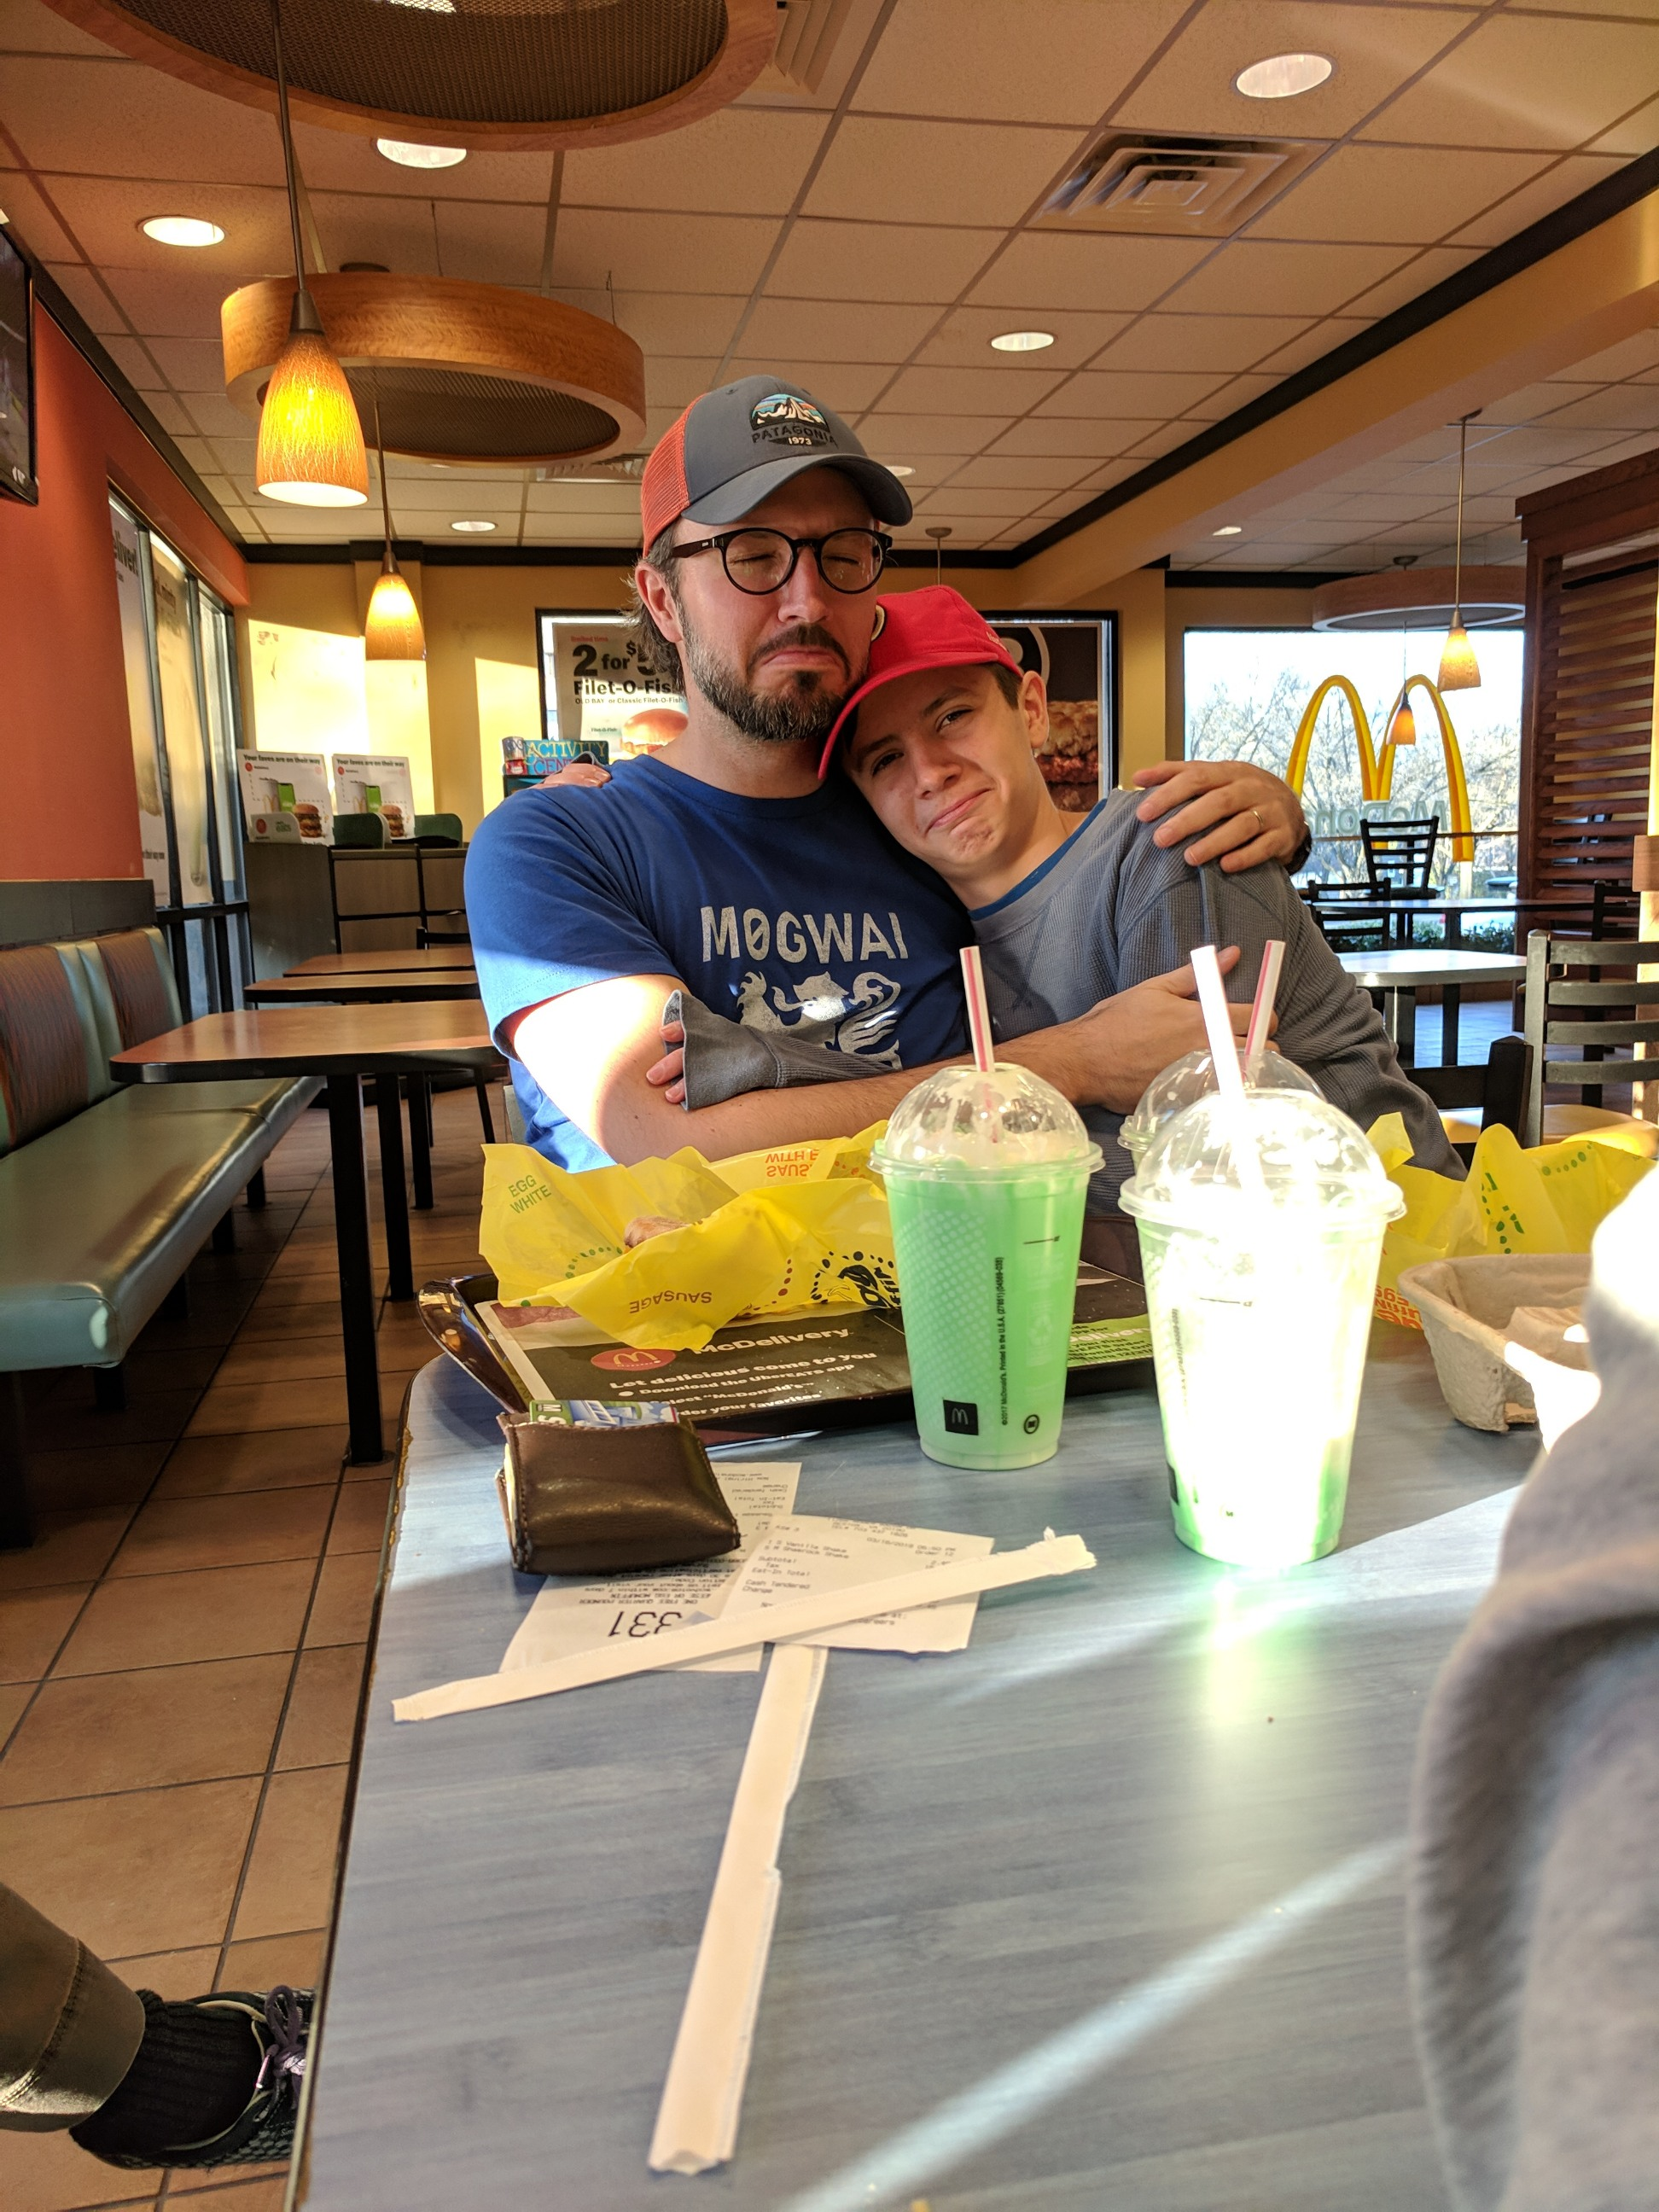 Sometimes guys have to stick together. Like after you waste your money on nappy McDonald's shamrock shakes. (Reston, Virginia; Mar 2019)